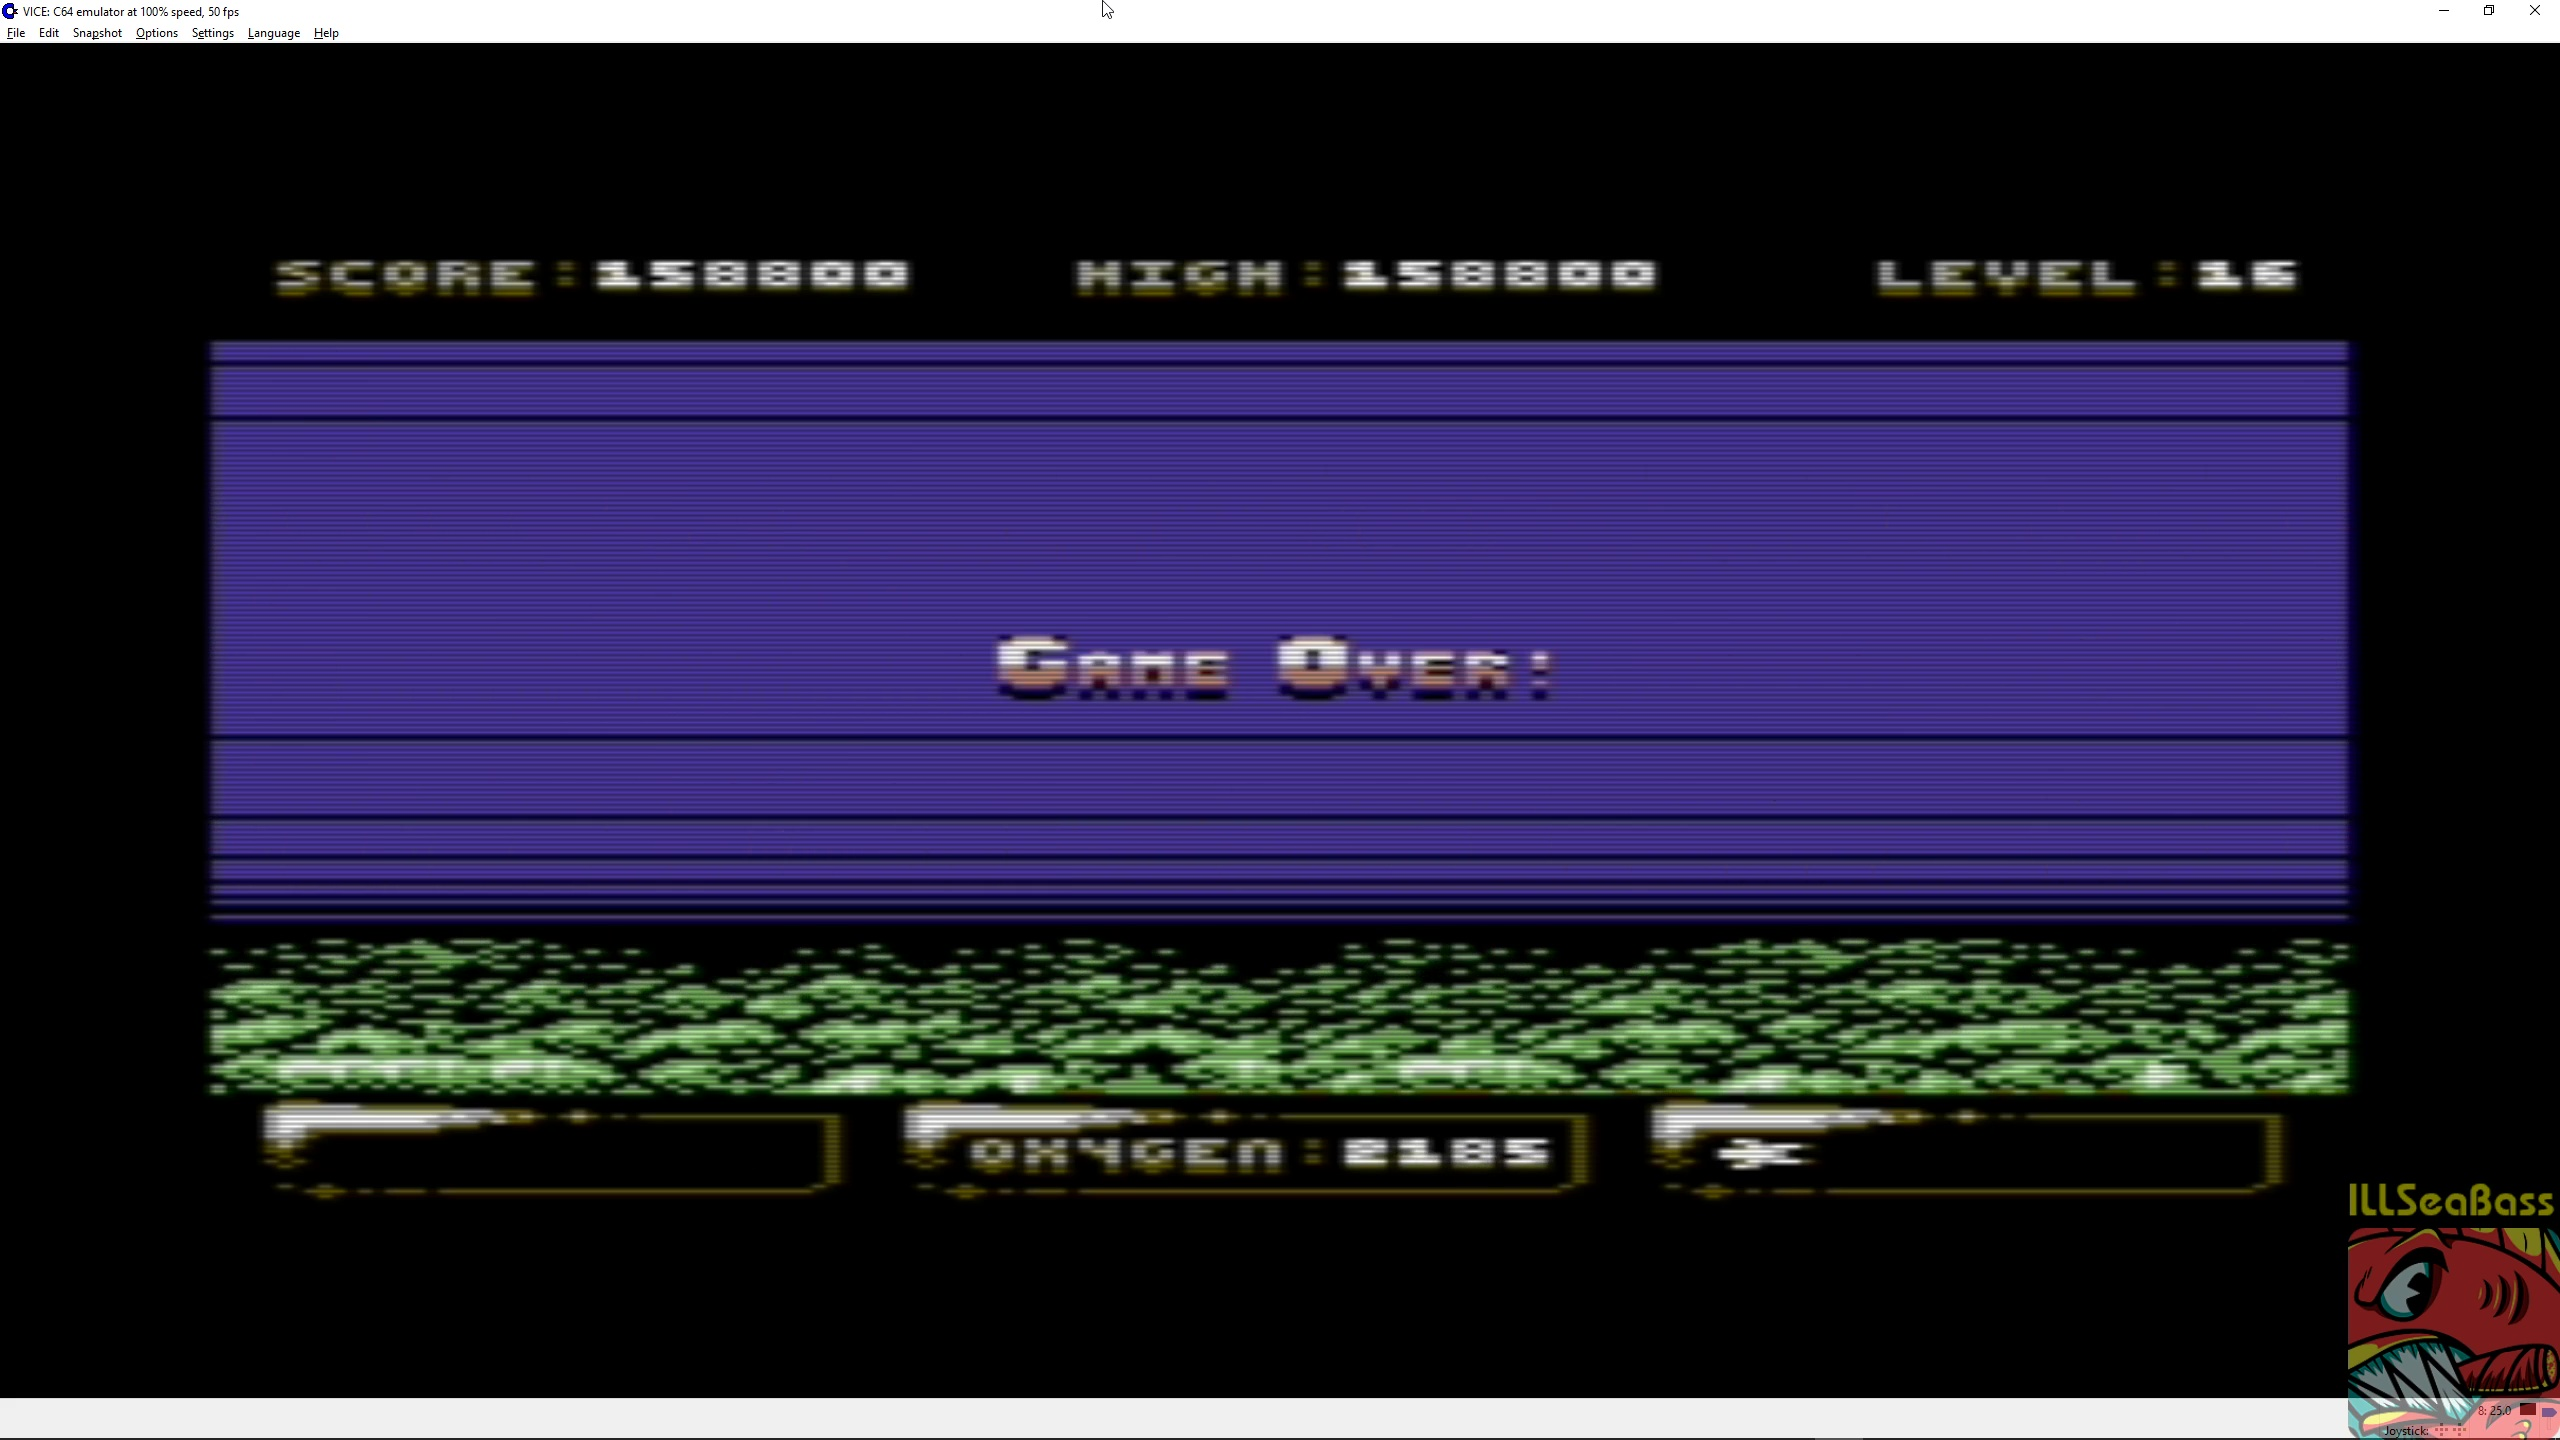 ILLSeaBass: Sub Hunter (Commodore 64 Emulated) 158,800 points on 2018-04-08 01:08:38